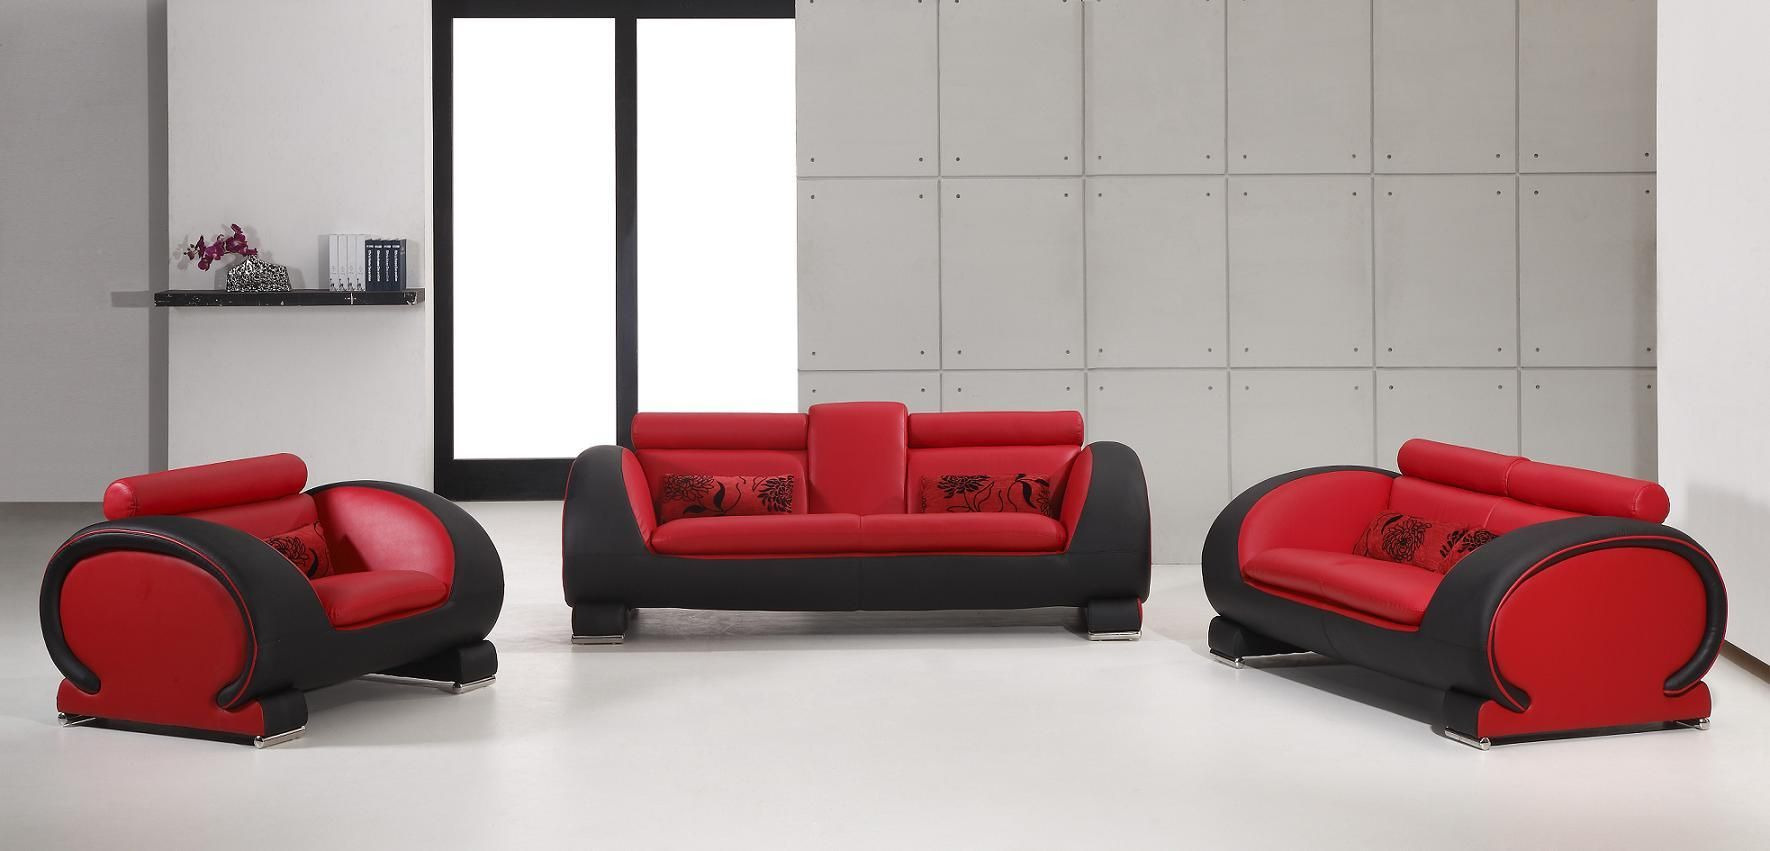 Furniture astonishing living room couch sets design for Red modern decor